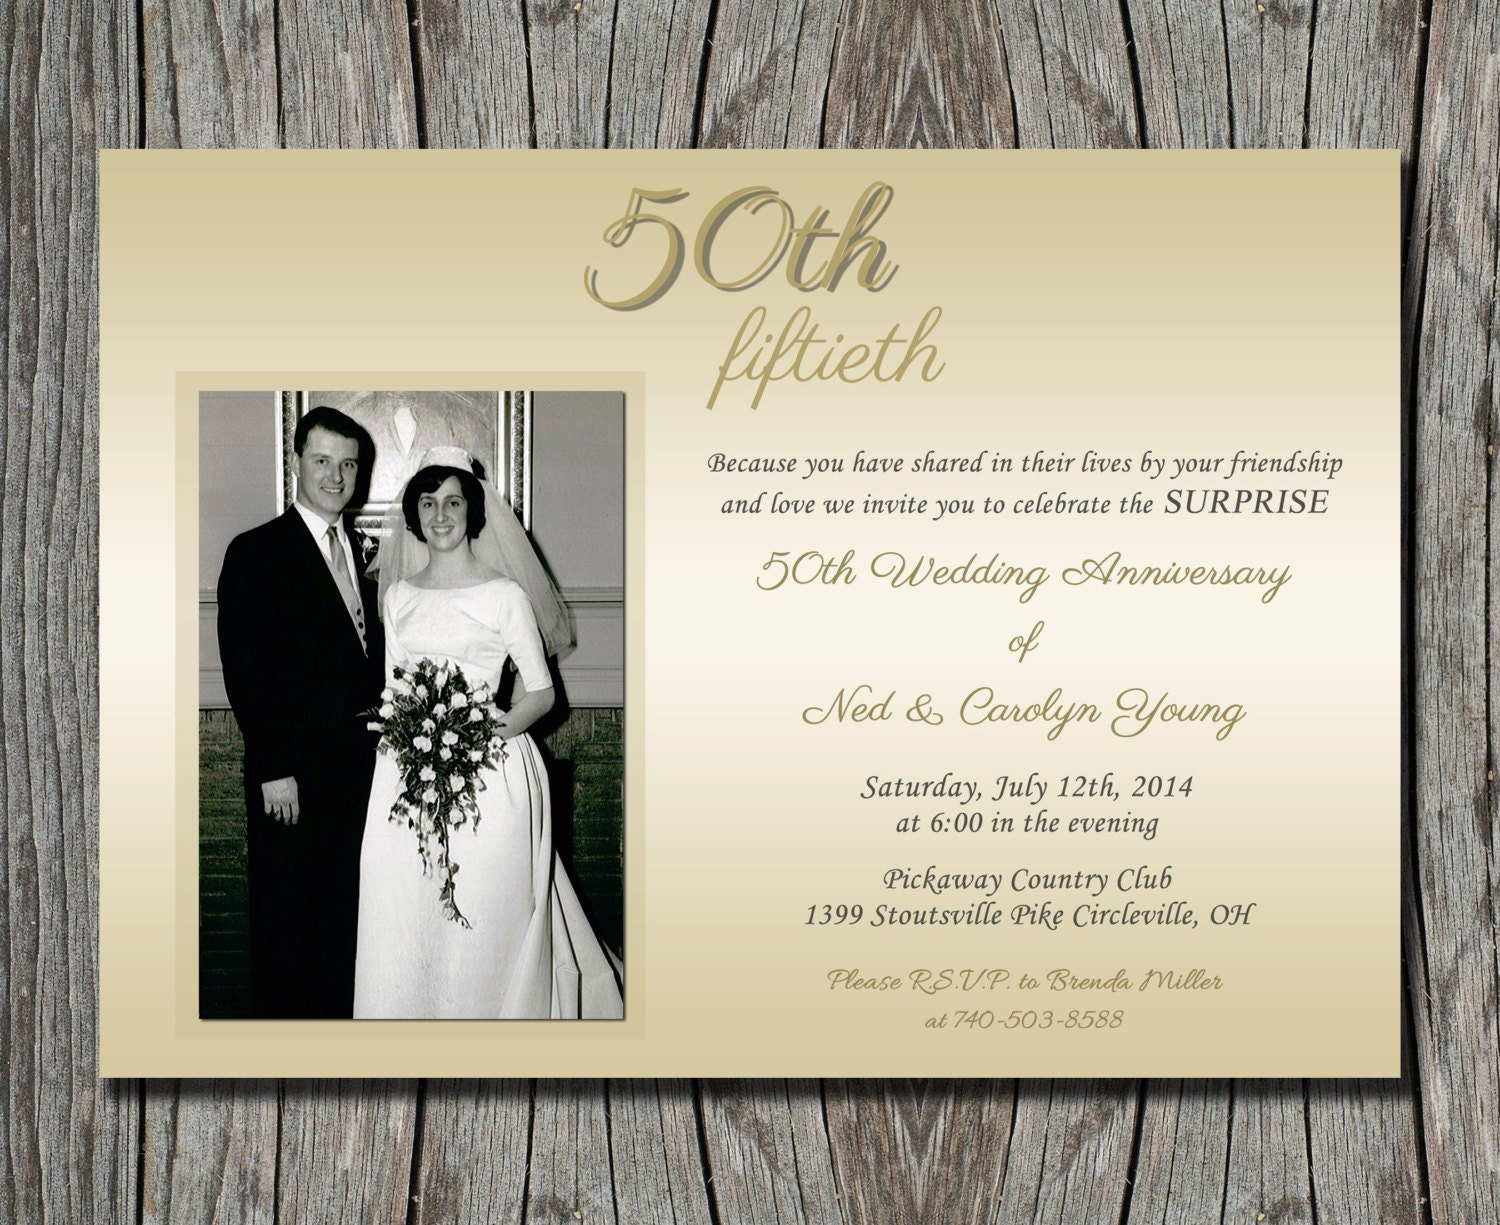 50th Wedding Invitation Templates: Surprise Wedding Anniversary Invitation 50th By PegsPrints